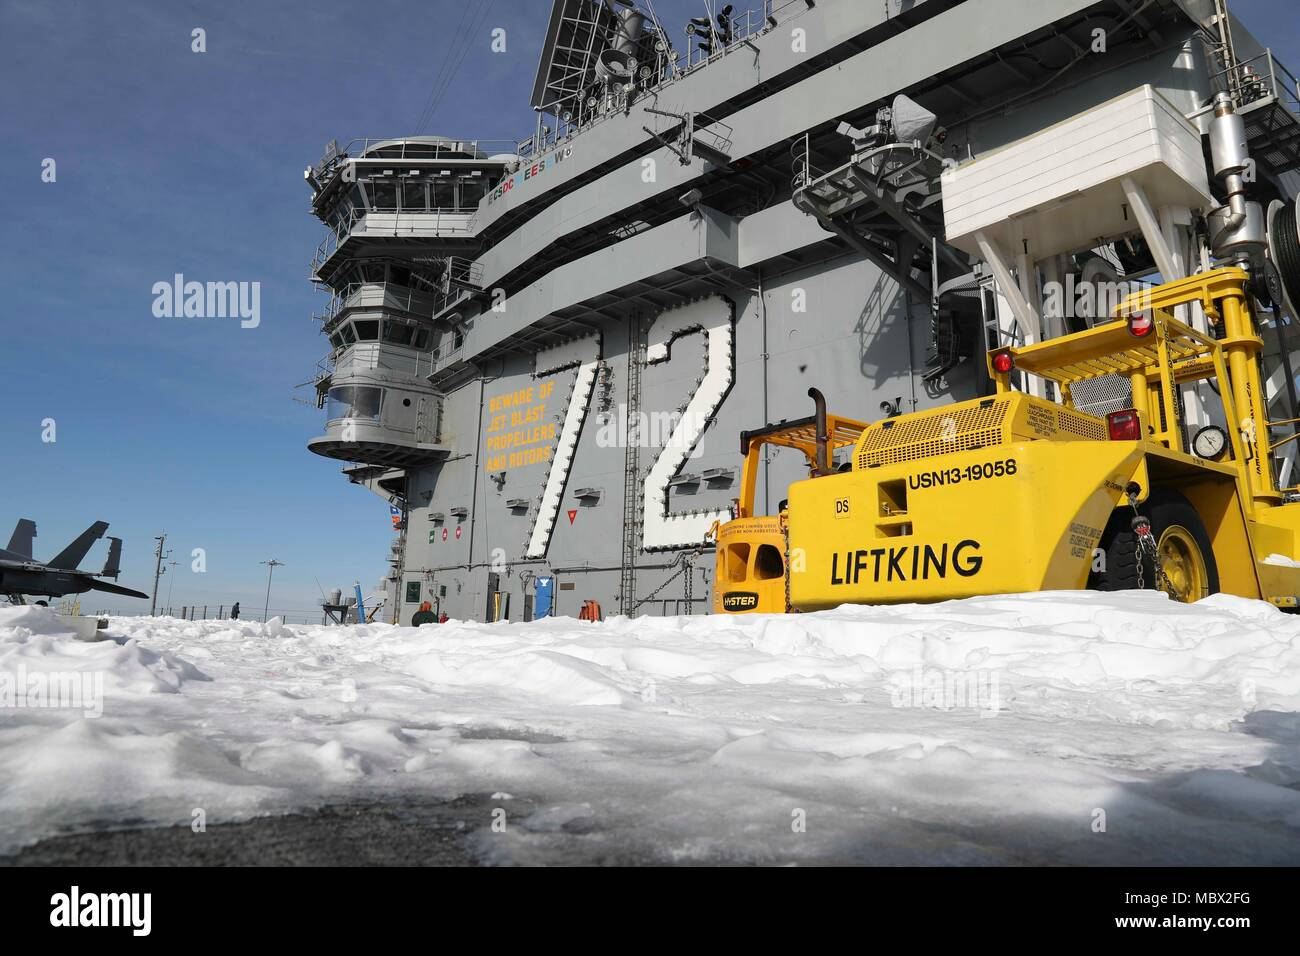 180108-N-MW275-021 NORFOLK (Jan. 8, 2017) Snow sits on the flight deck of the Nimitz-class aircraft carrier USS Abraham Lincoln (CVN 72). (U.S. Navy photo by Mass Communication Specialist 3rd Class Cody Anderson/Released) - Stock Image